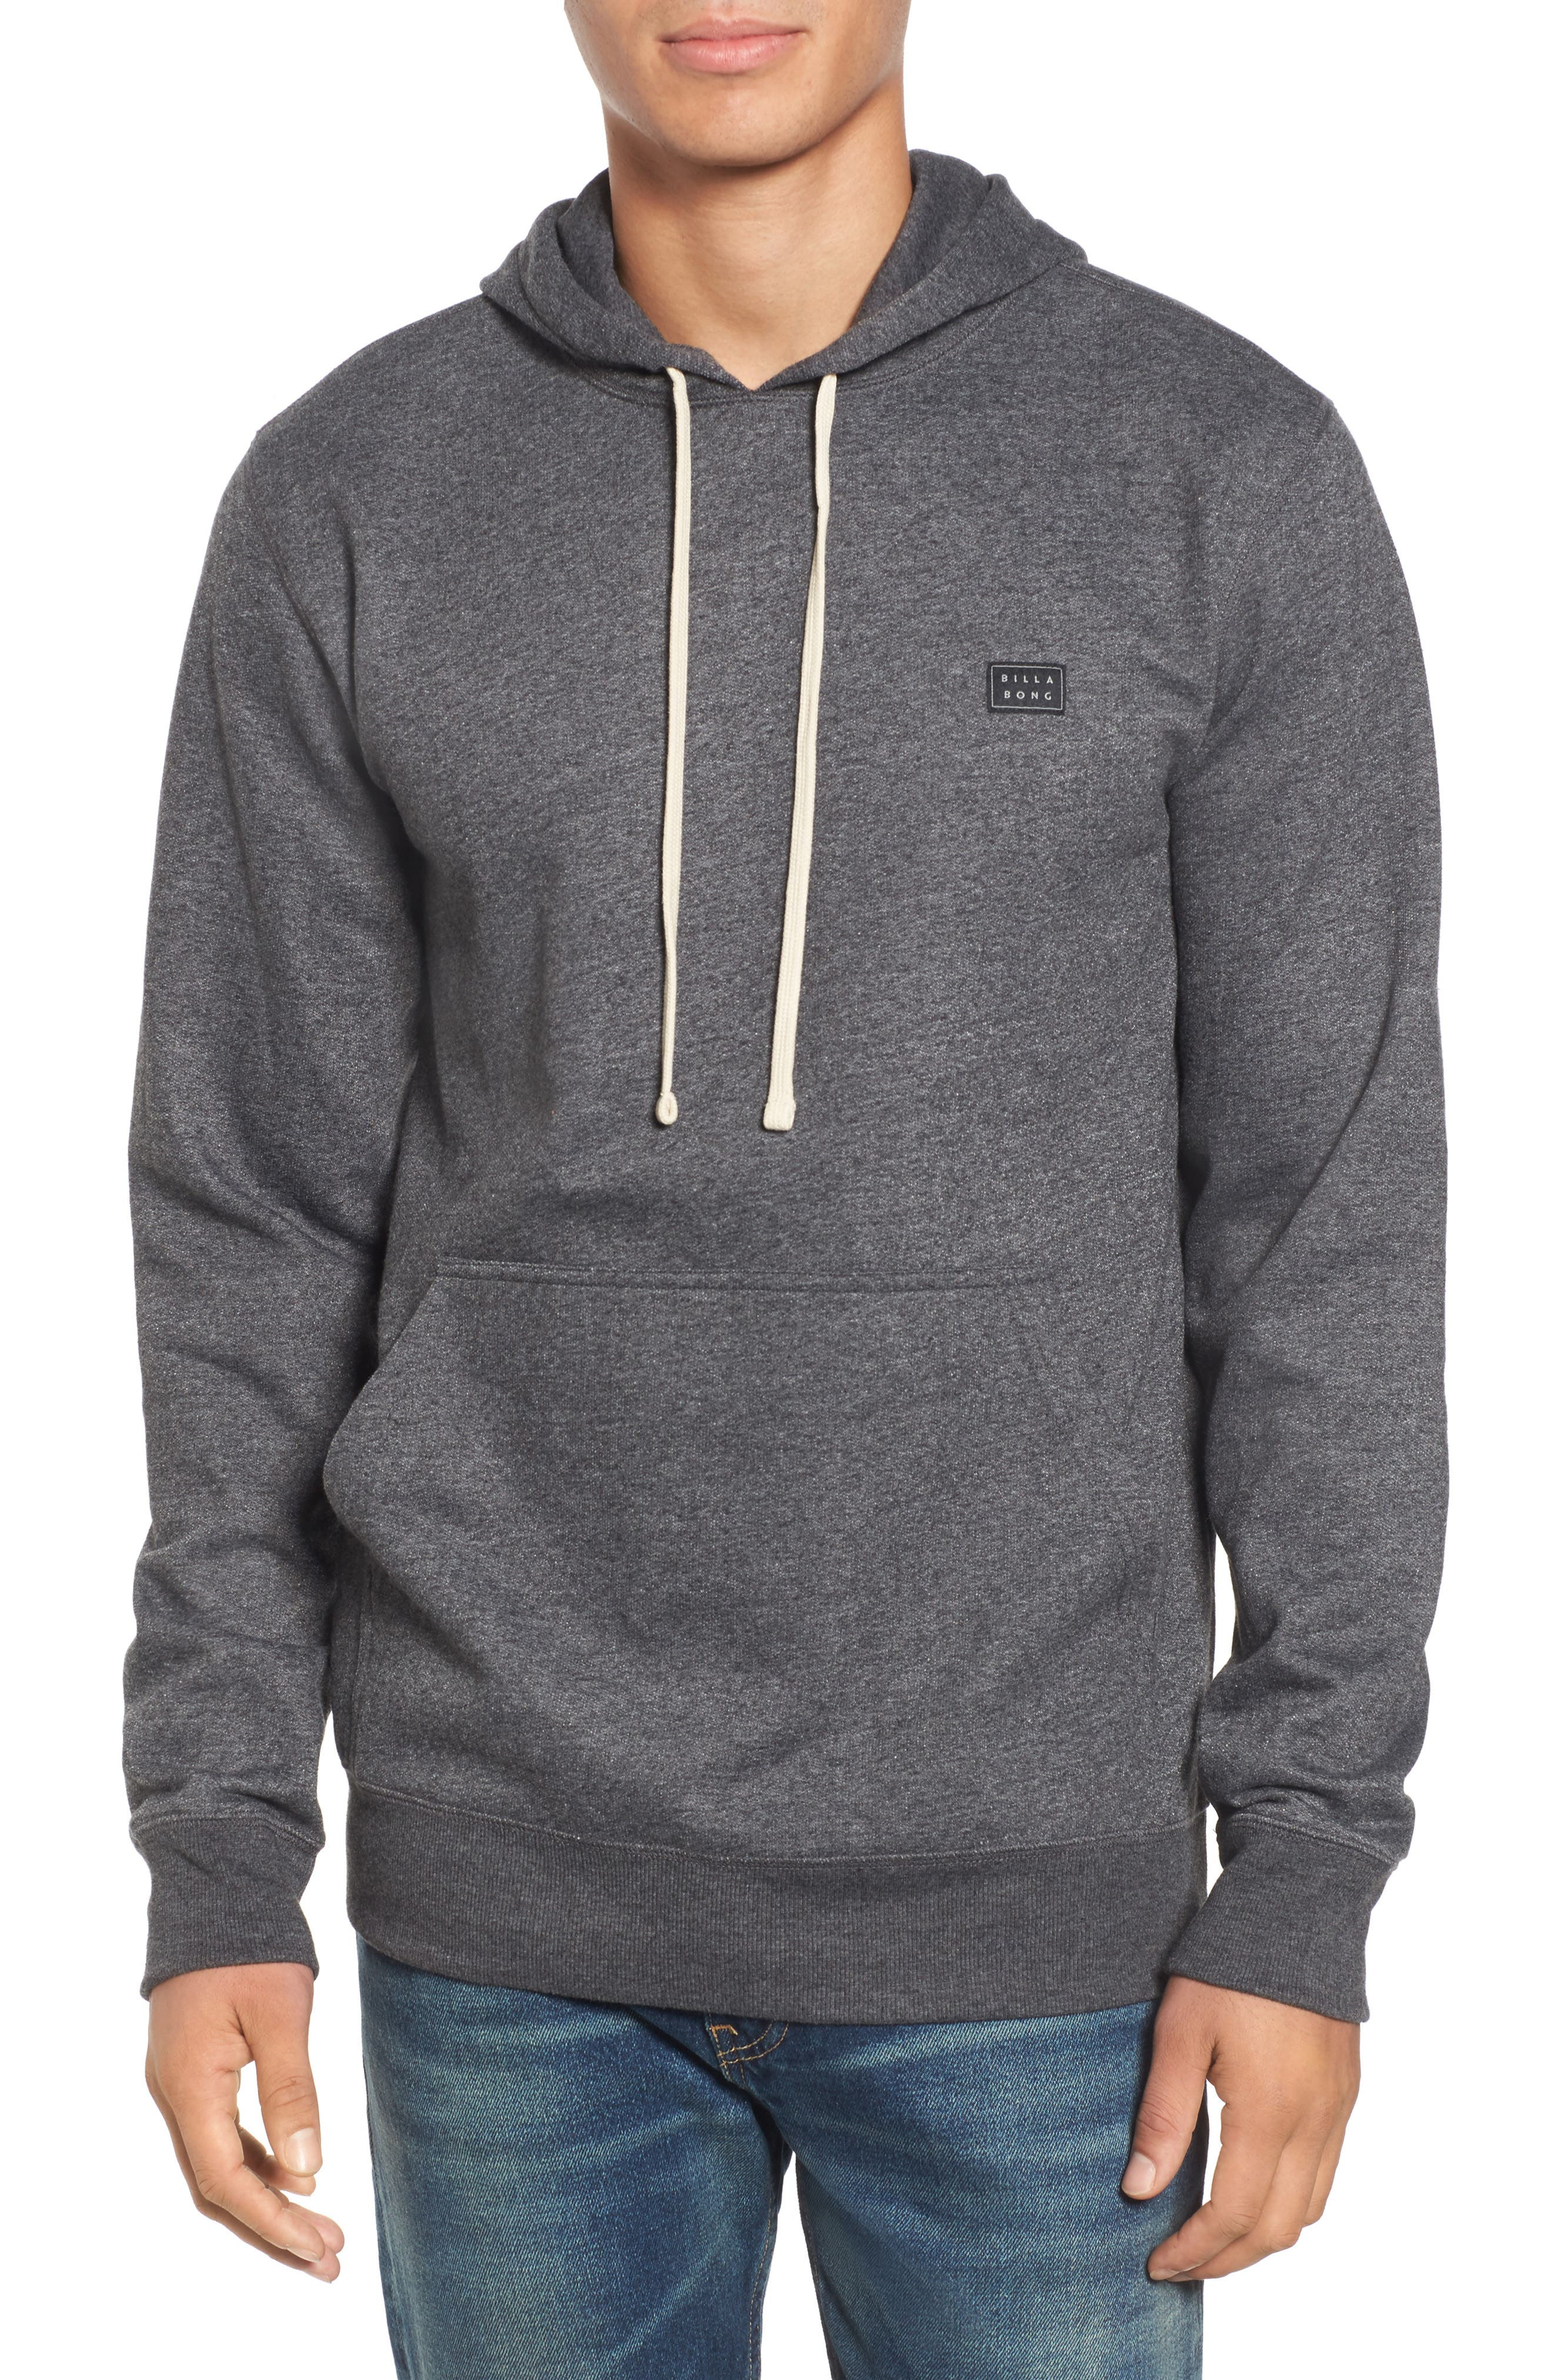 All Day Pullover Hoodie,                             Main thumbnail 1, color,                             025